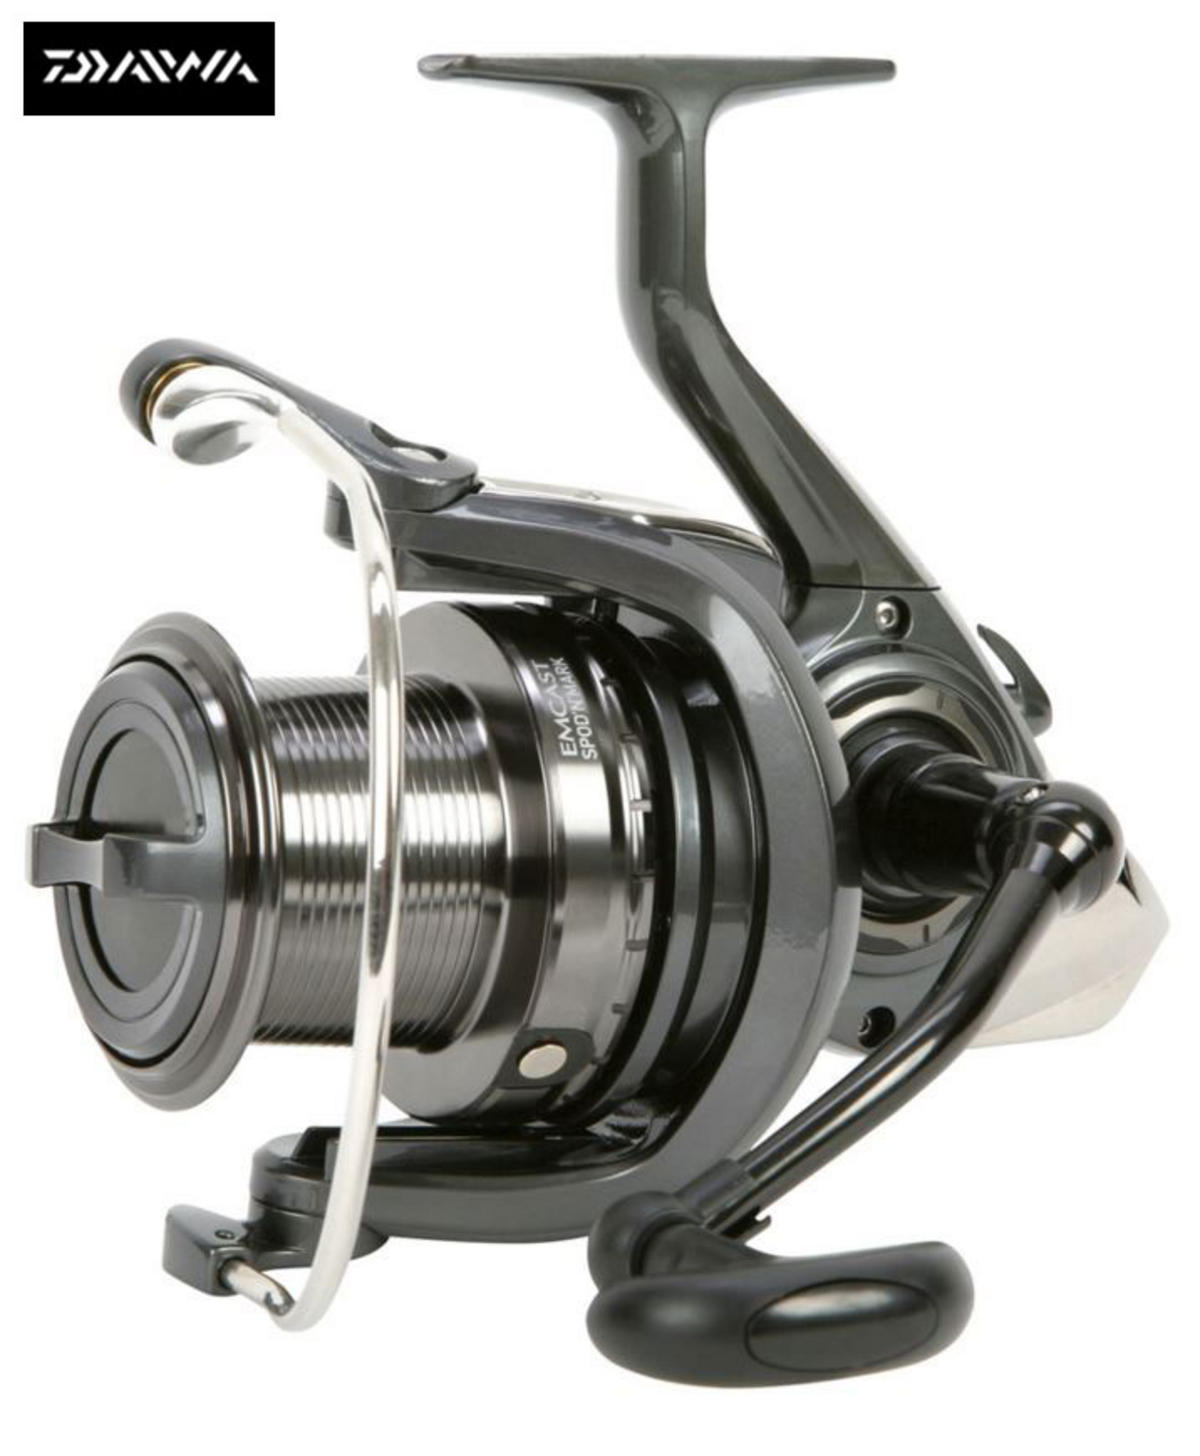 DAIWA EMCAST SPOD 'N' MARK CARP FISHING REEL 5000 ECSM5000